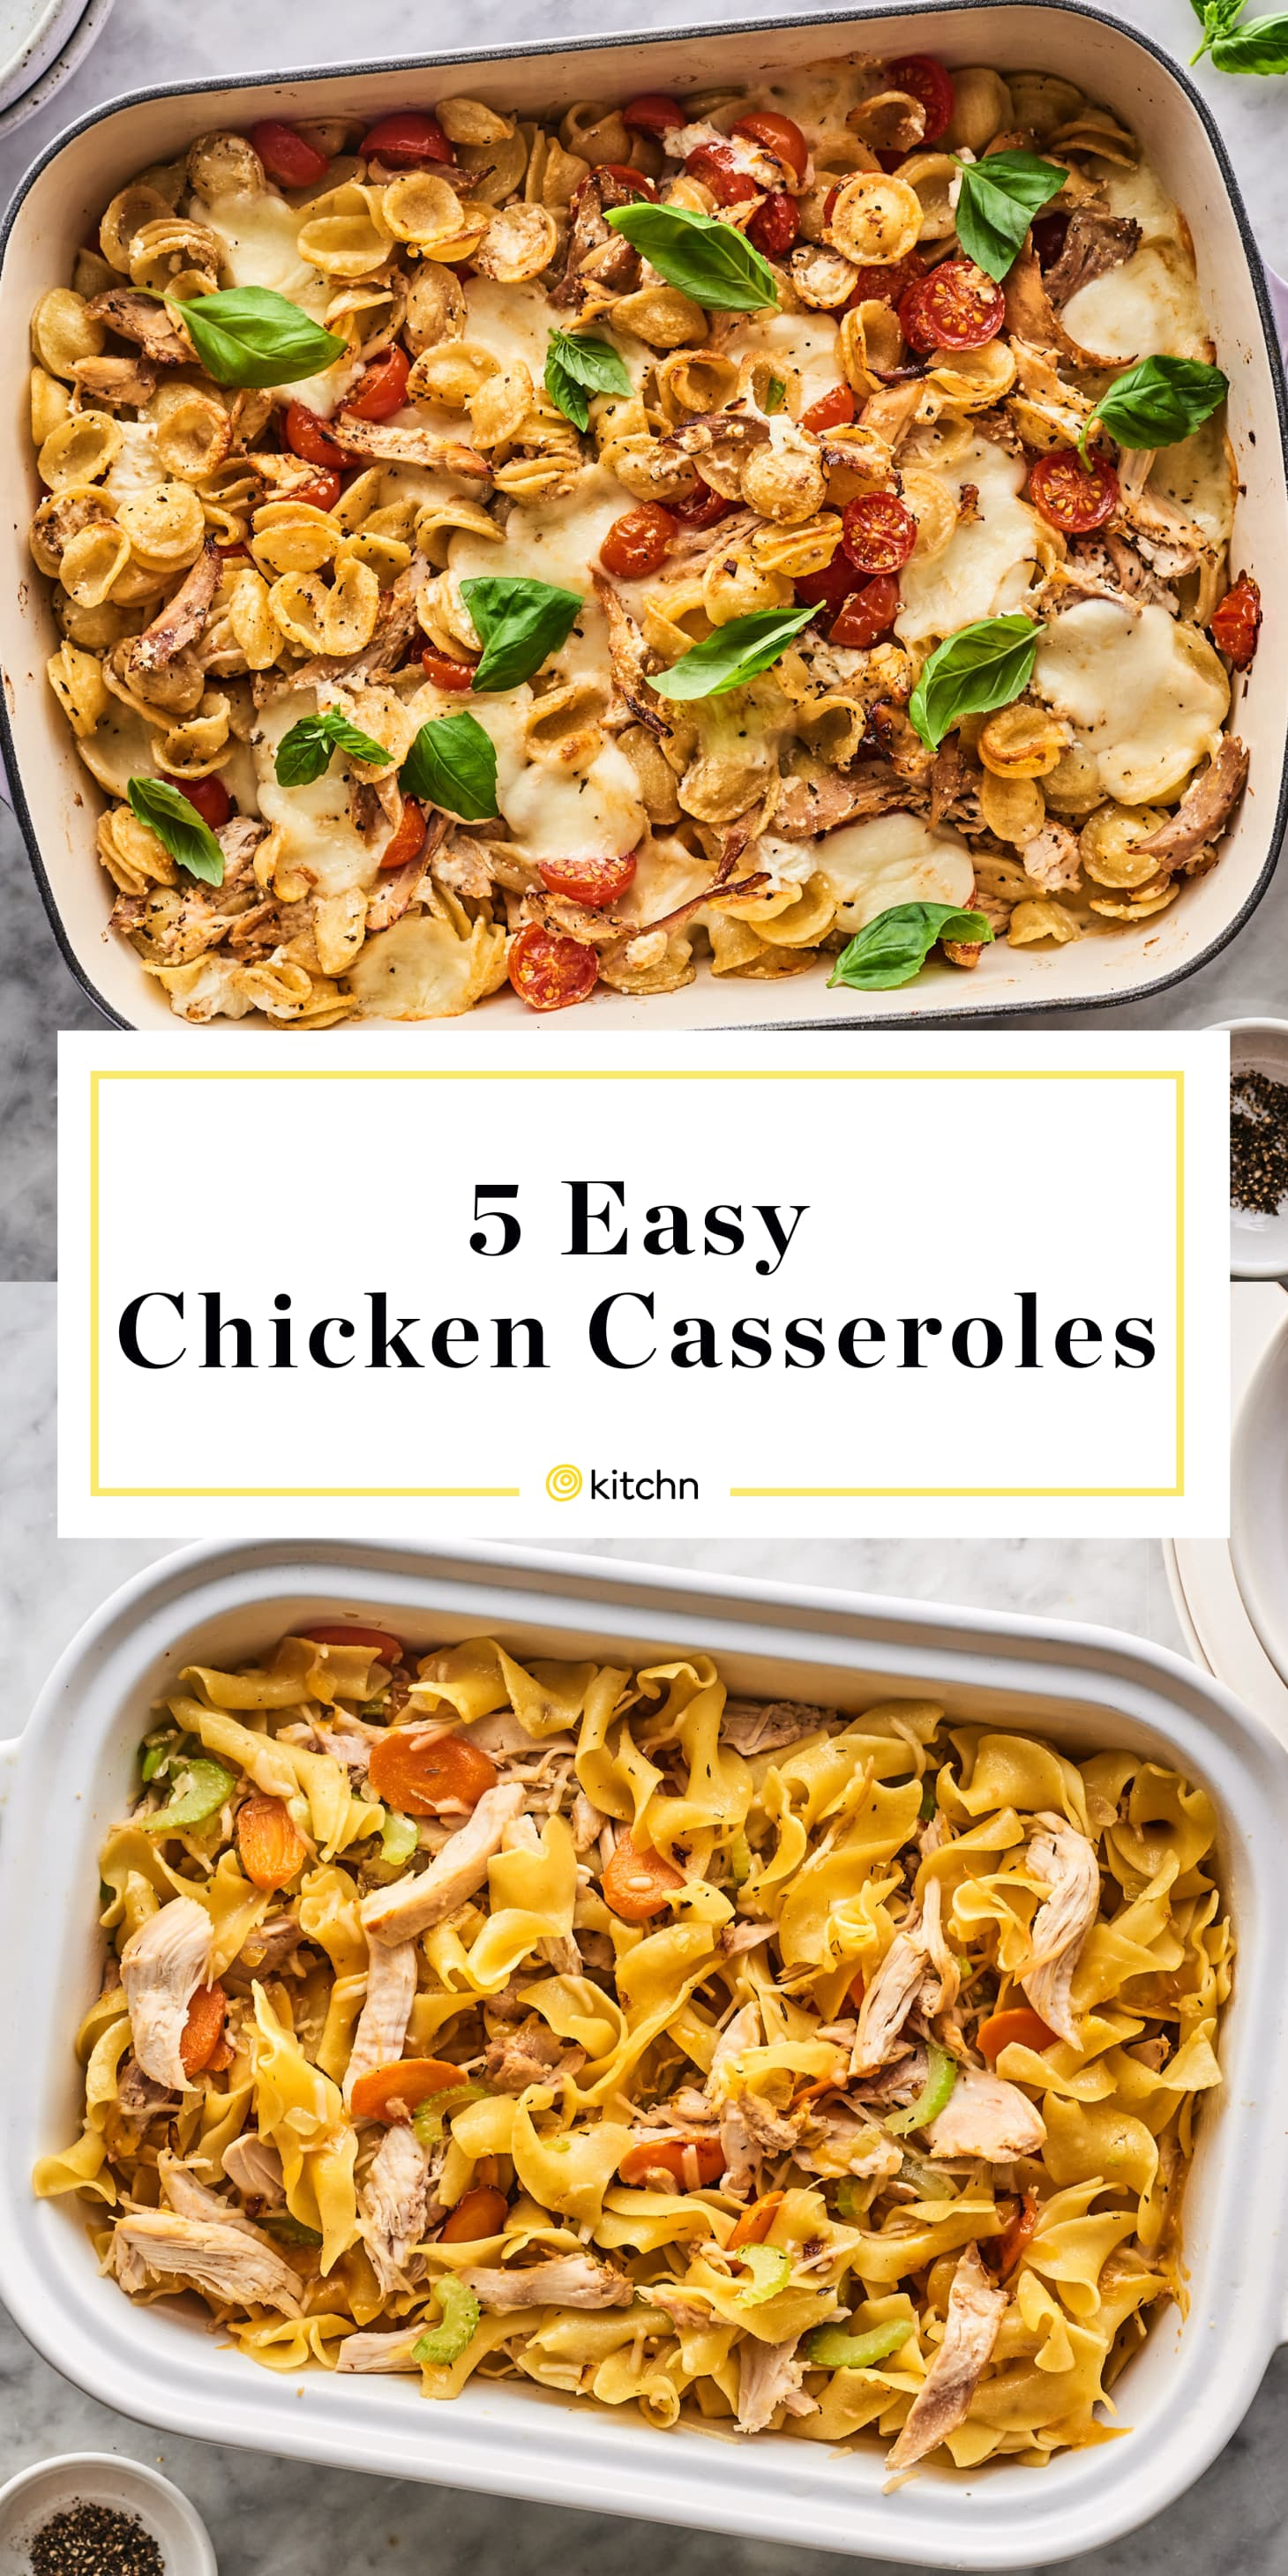 5 Easy Comforting Chicken Casserole Recipes Kitchn